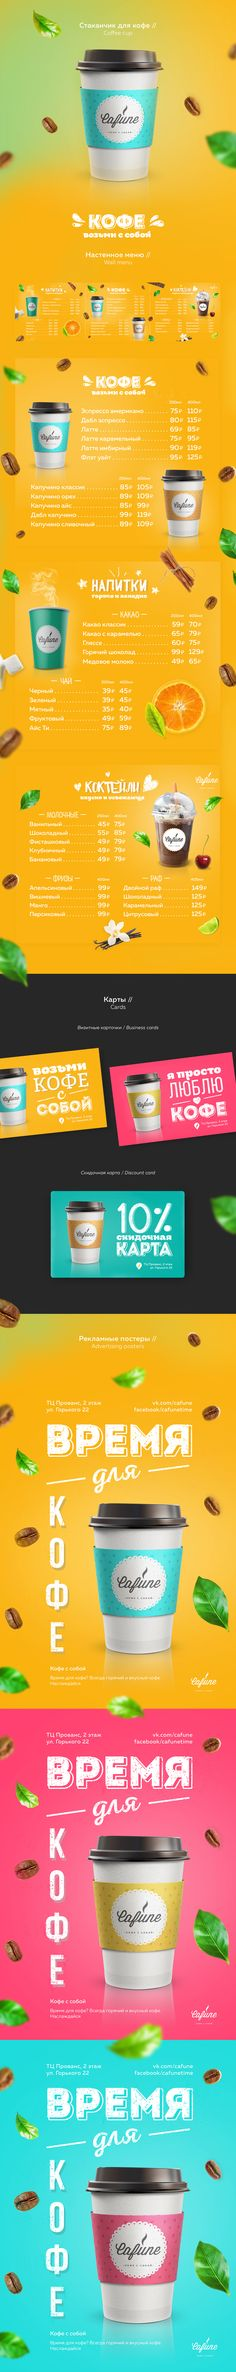 Cafune | Coffee to go on Behance